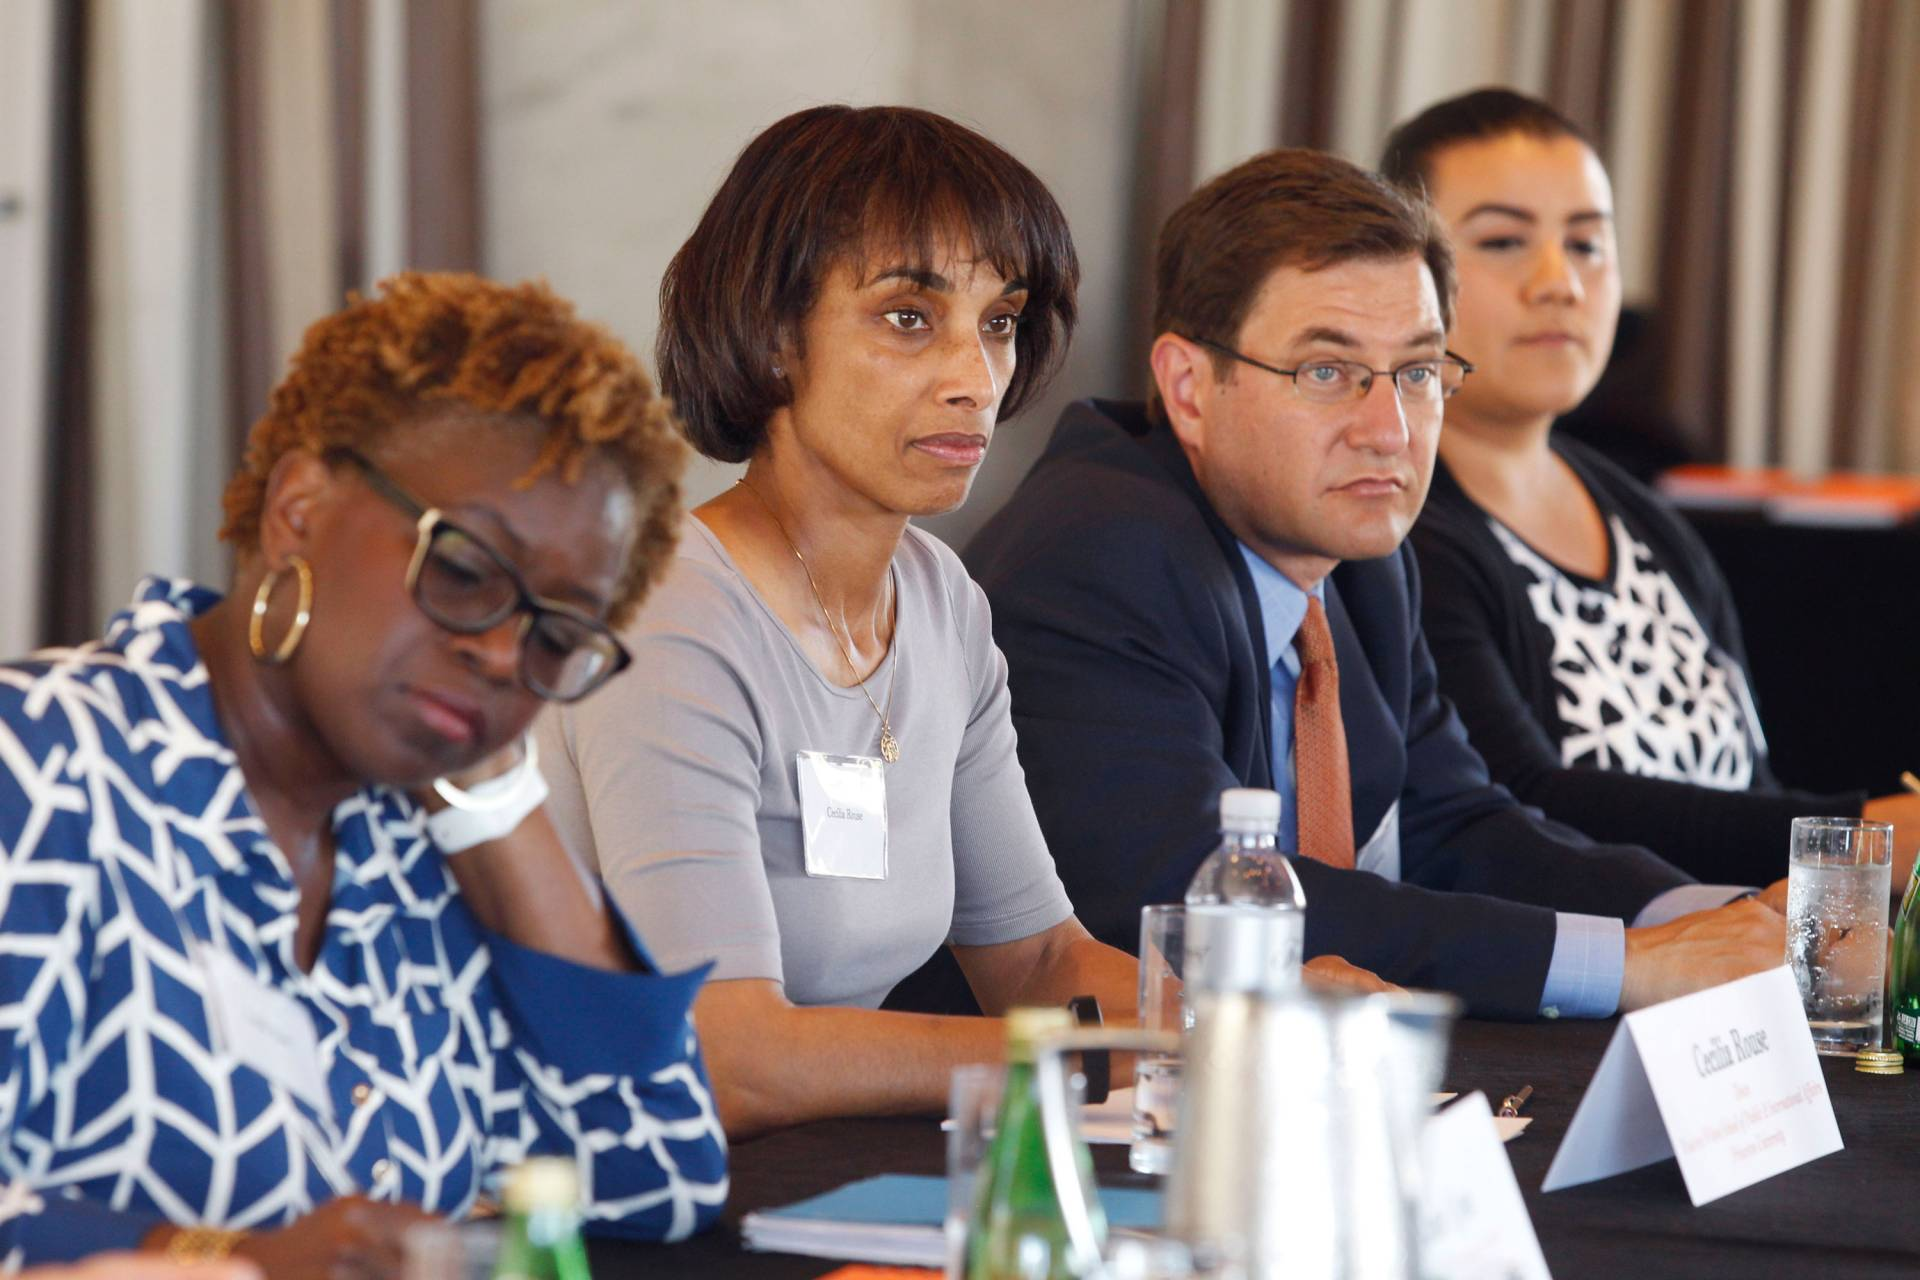 Cecilia Rouse sits at a table with others during a panel